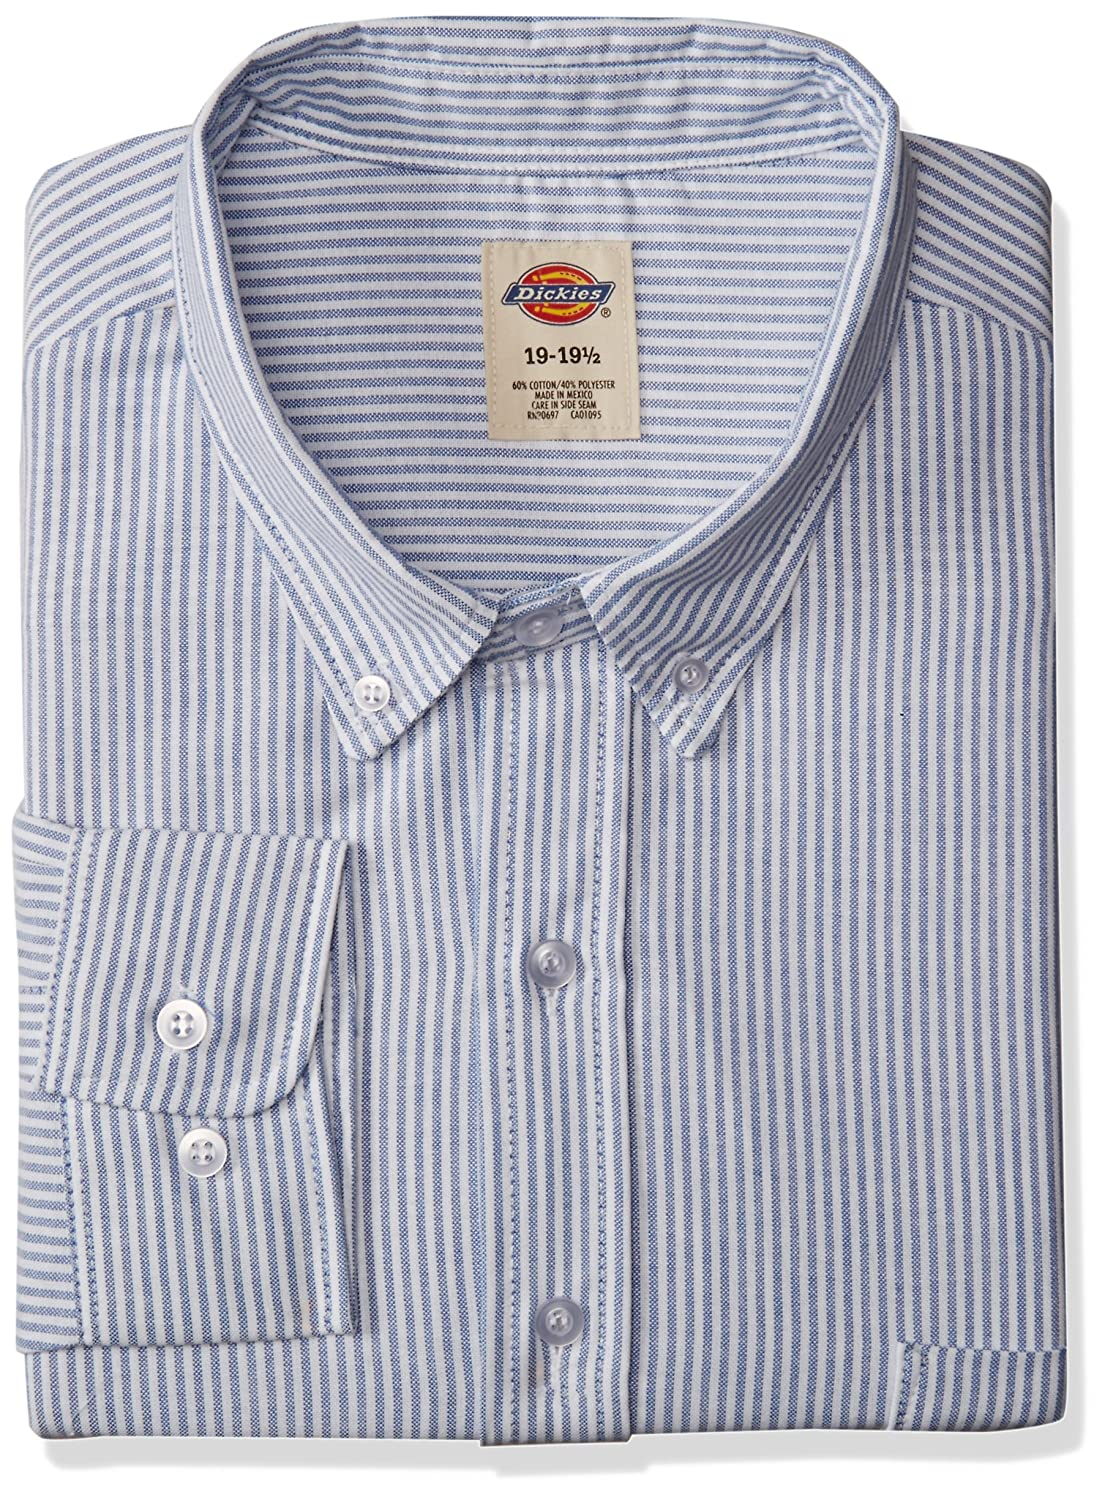 6fe5c615 Dickies Occupational Workwear SS36BS Polyester/Cotton Men's Button-Down  Long Sleeve Oxford Shirt, Blue with White Stripe: Amazon.com: Clothing